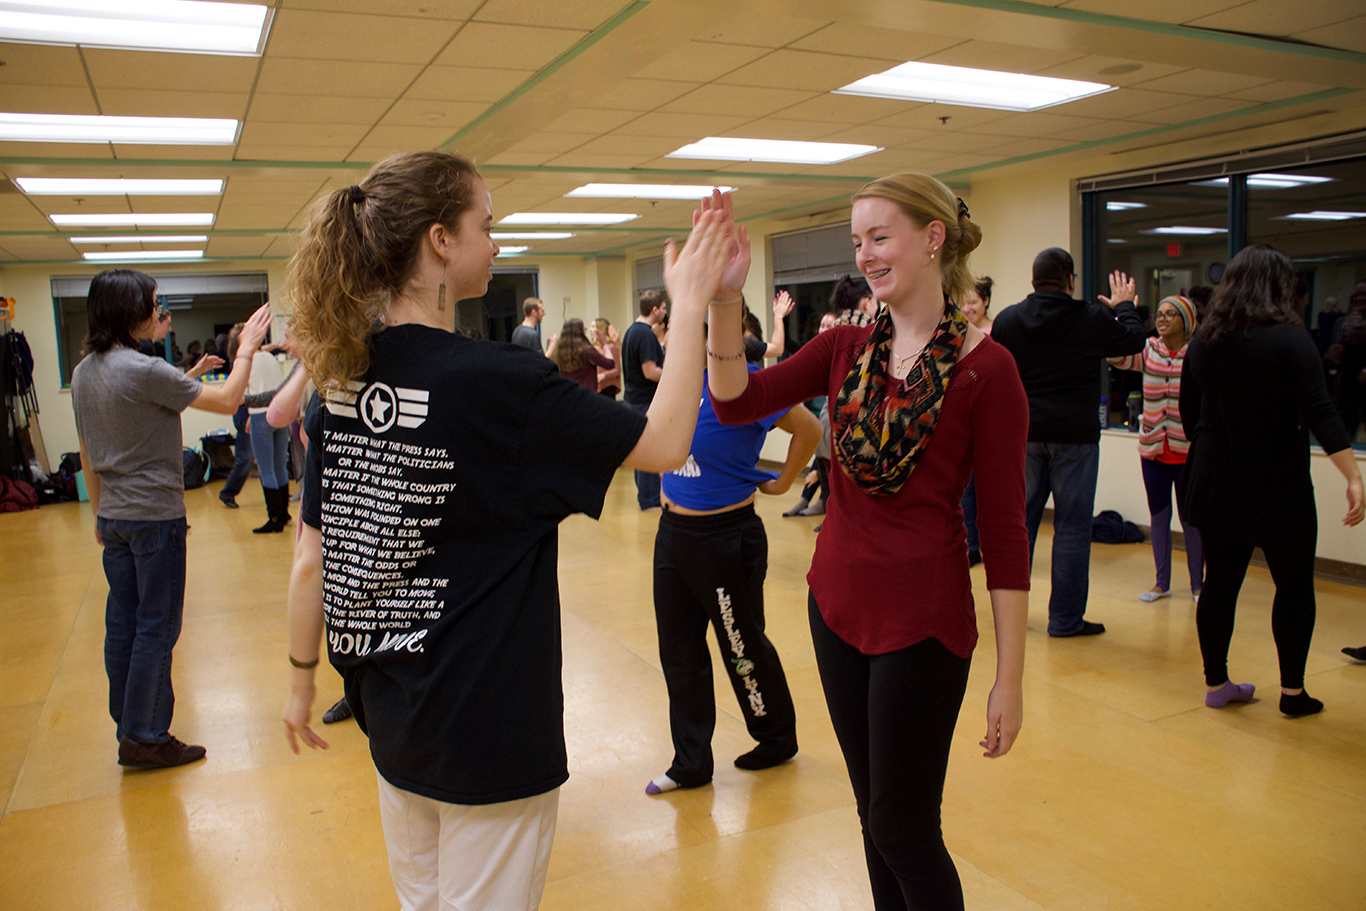 Students high-five each other in a dance studio during dance class.